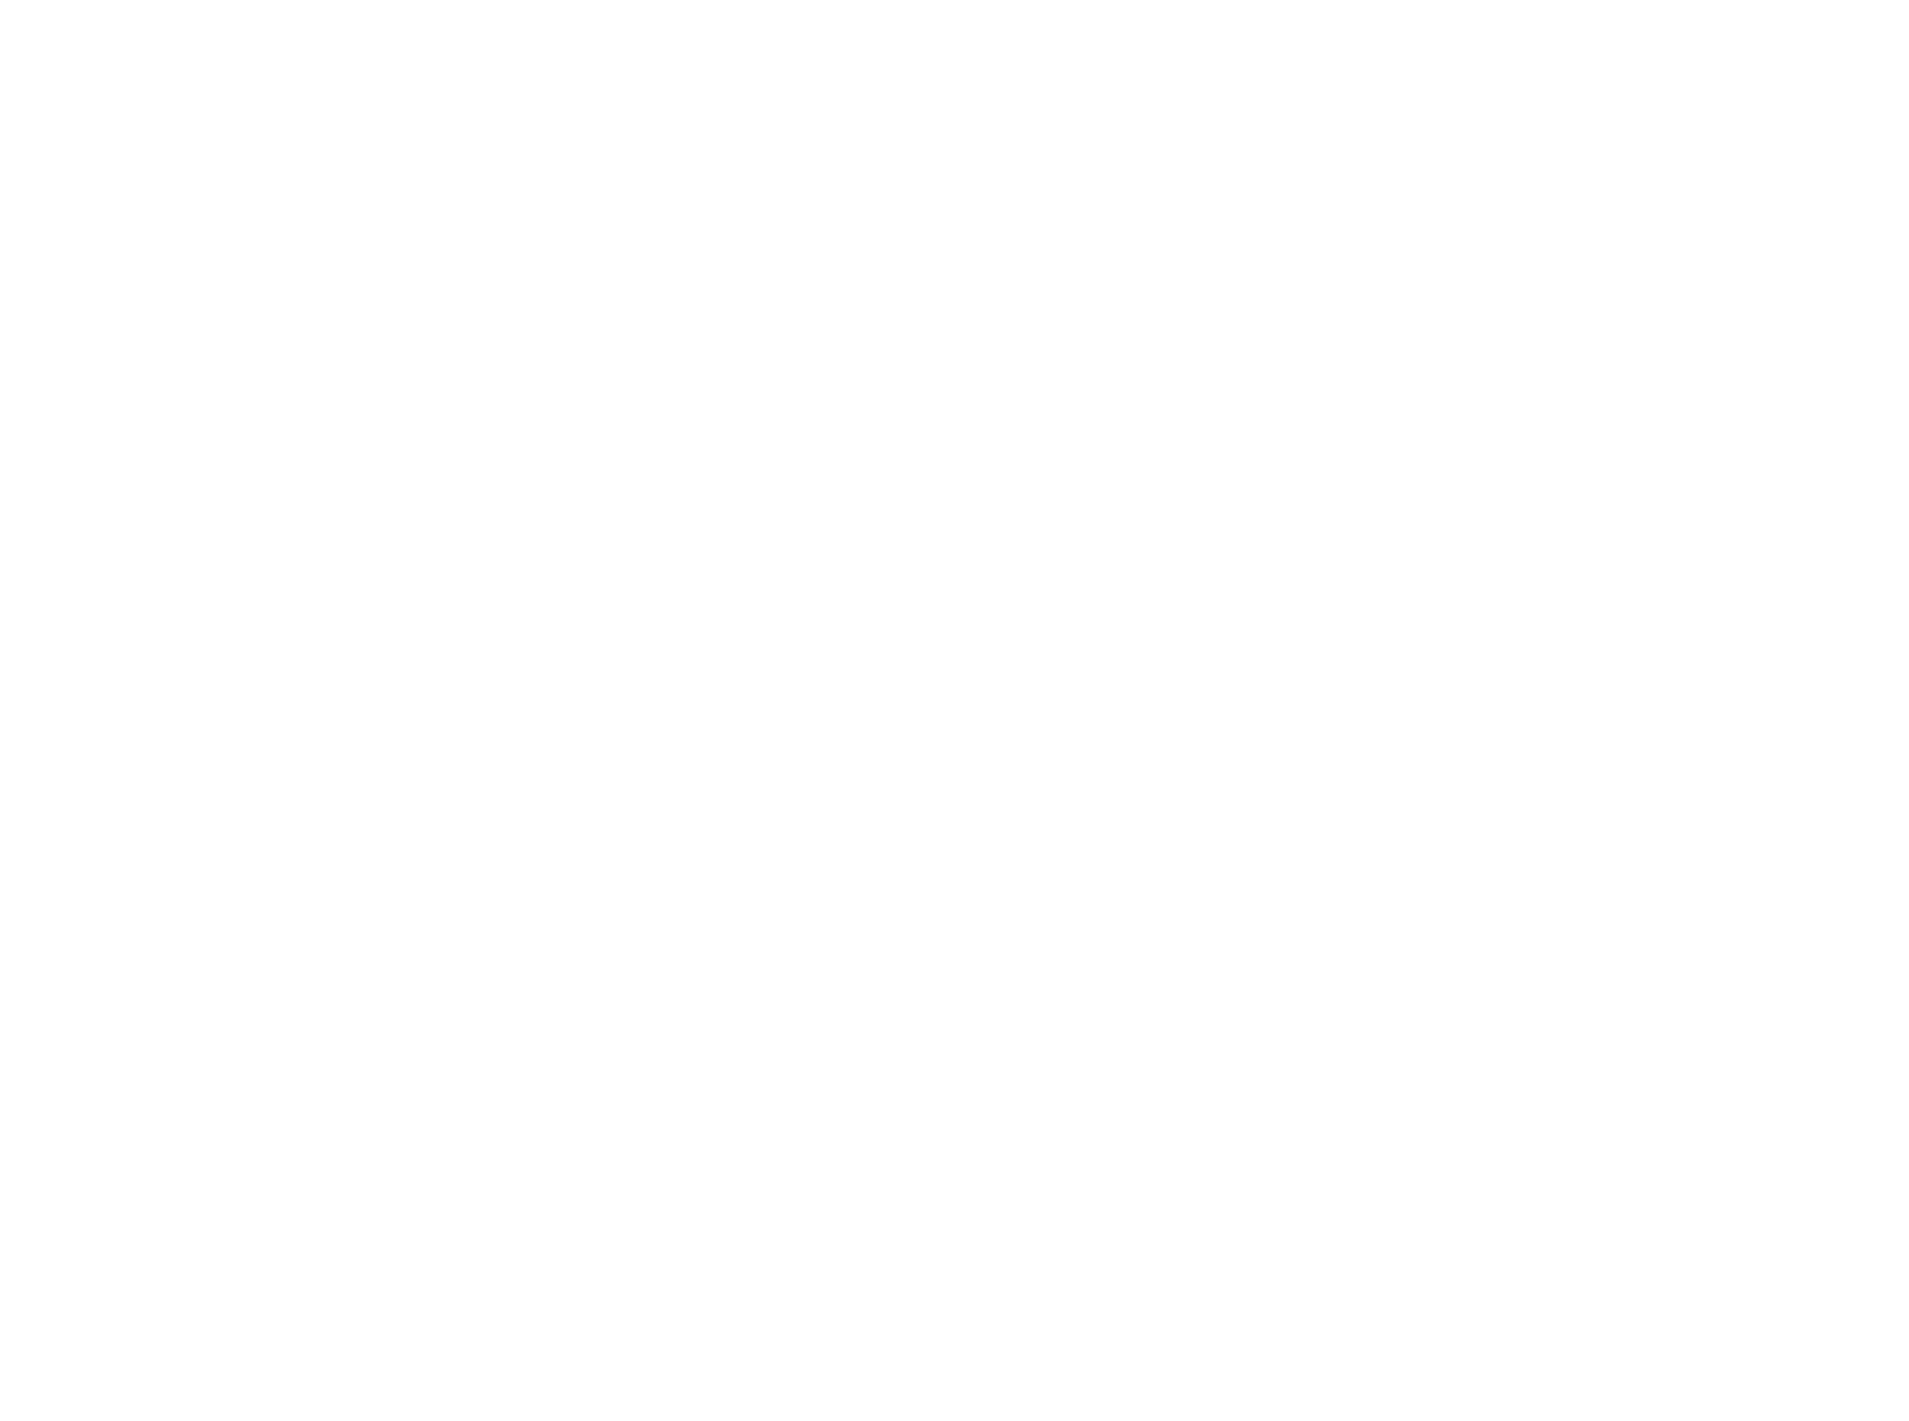 High Road Craft Ice Cream 2019 Logo_Simp